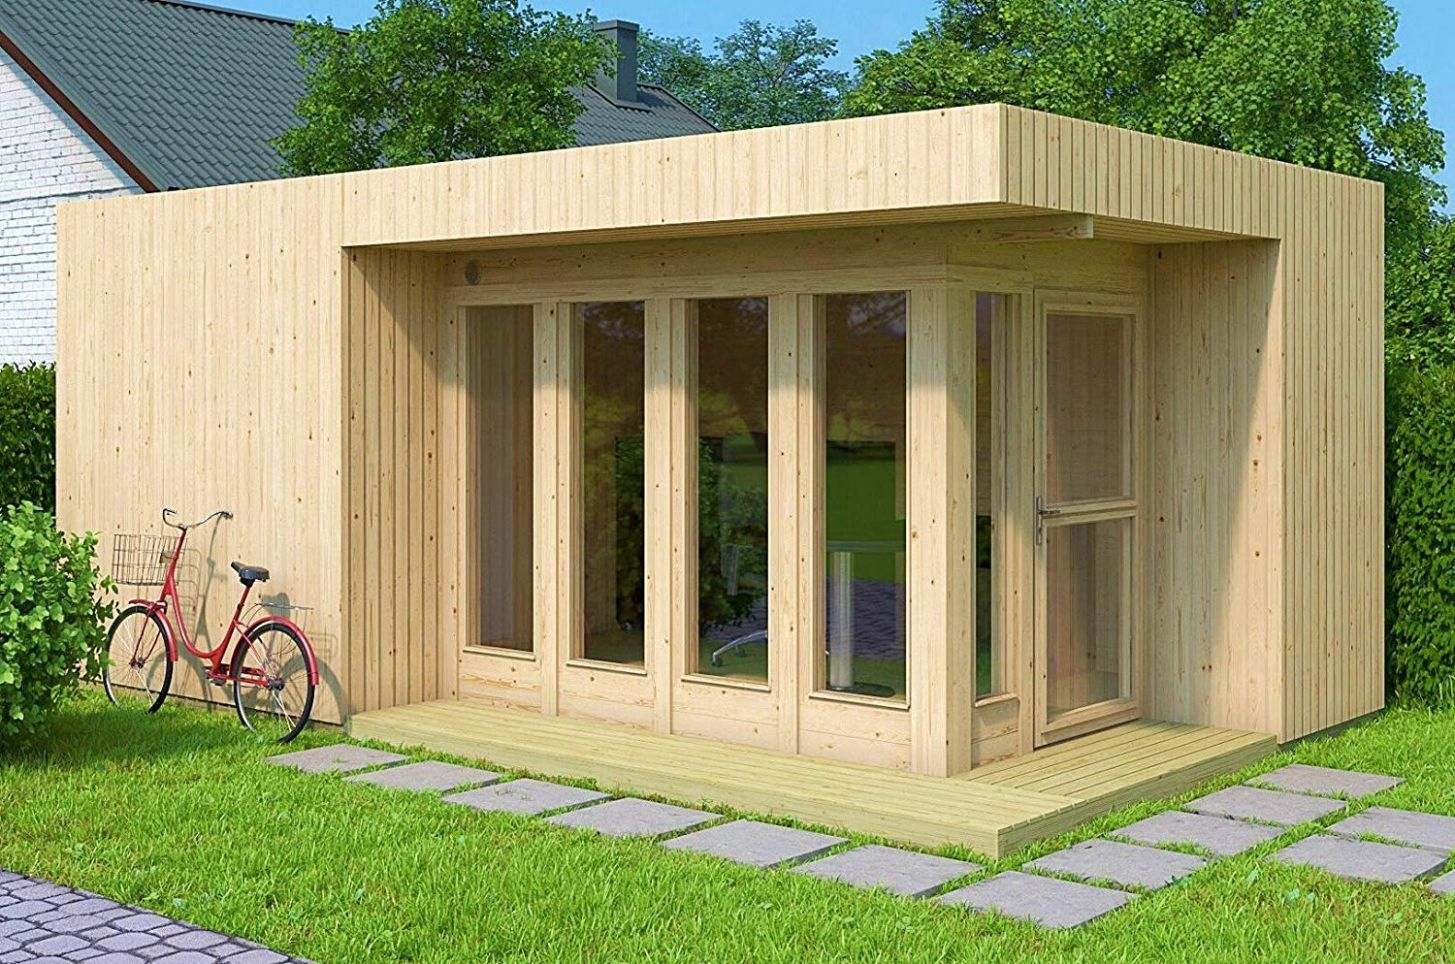 Amazon sells a DIY tiny house kit you can build yourself in a few ...